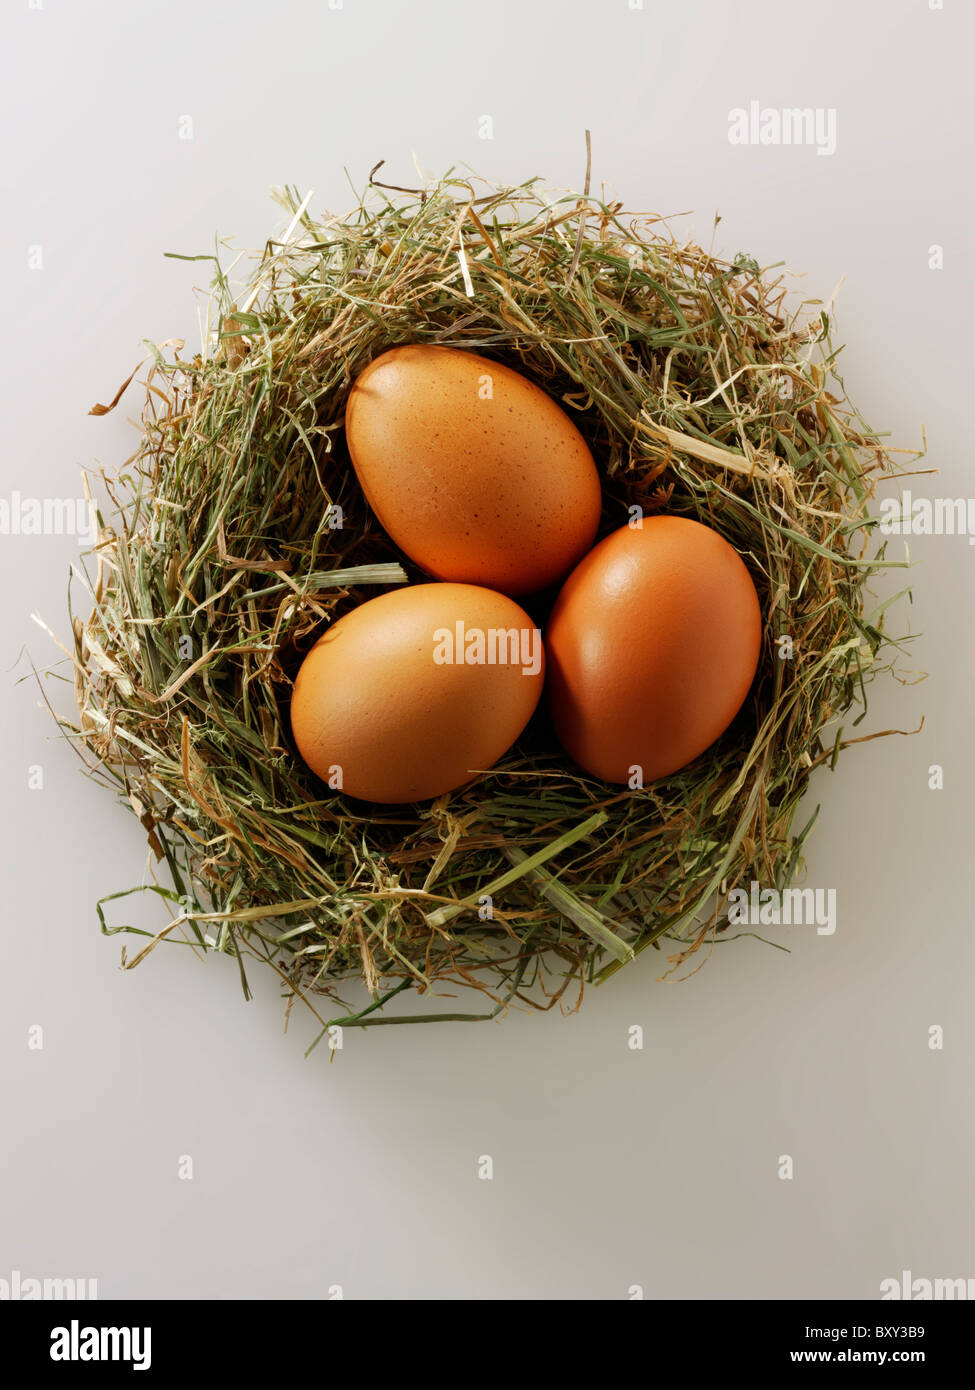 Fresh Burford Brown free range organic Eggs in a nest - Stock Image